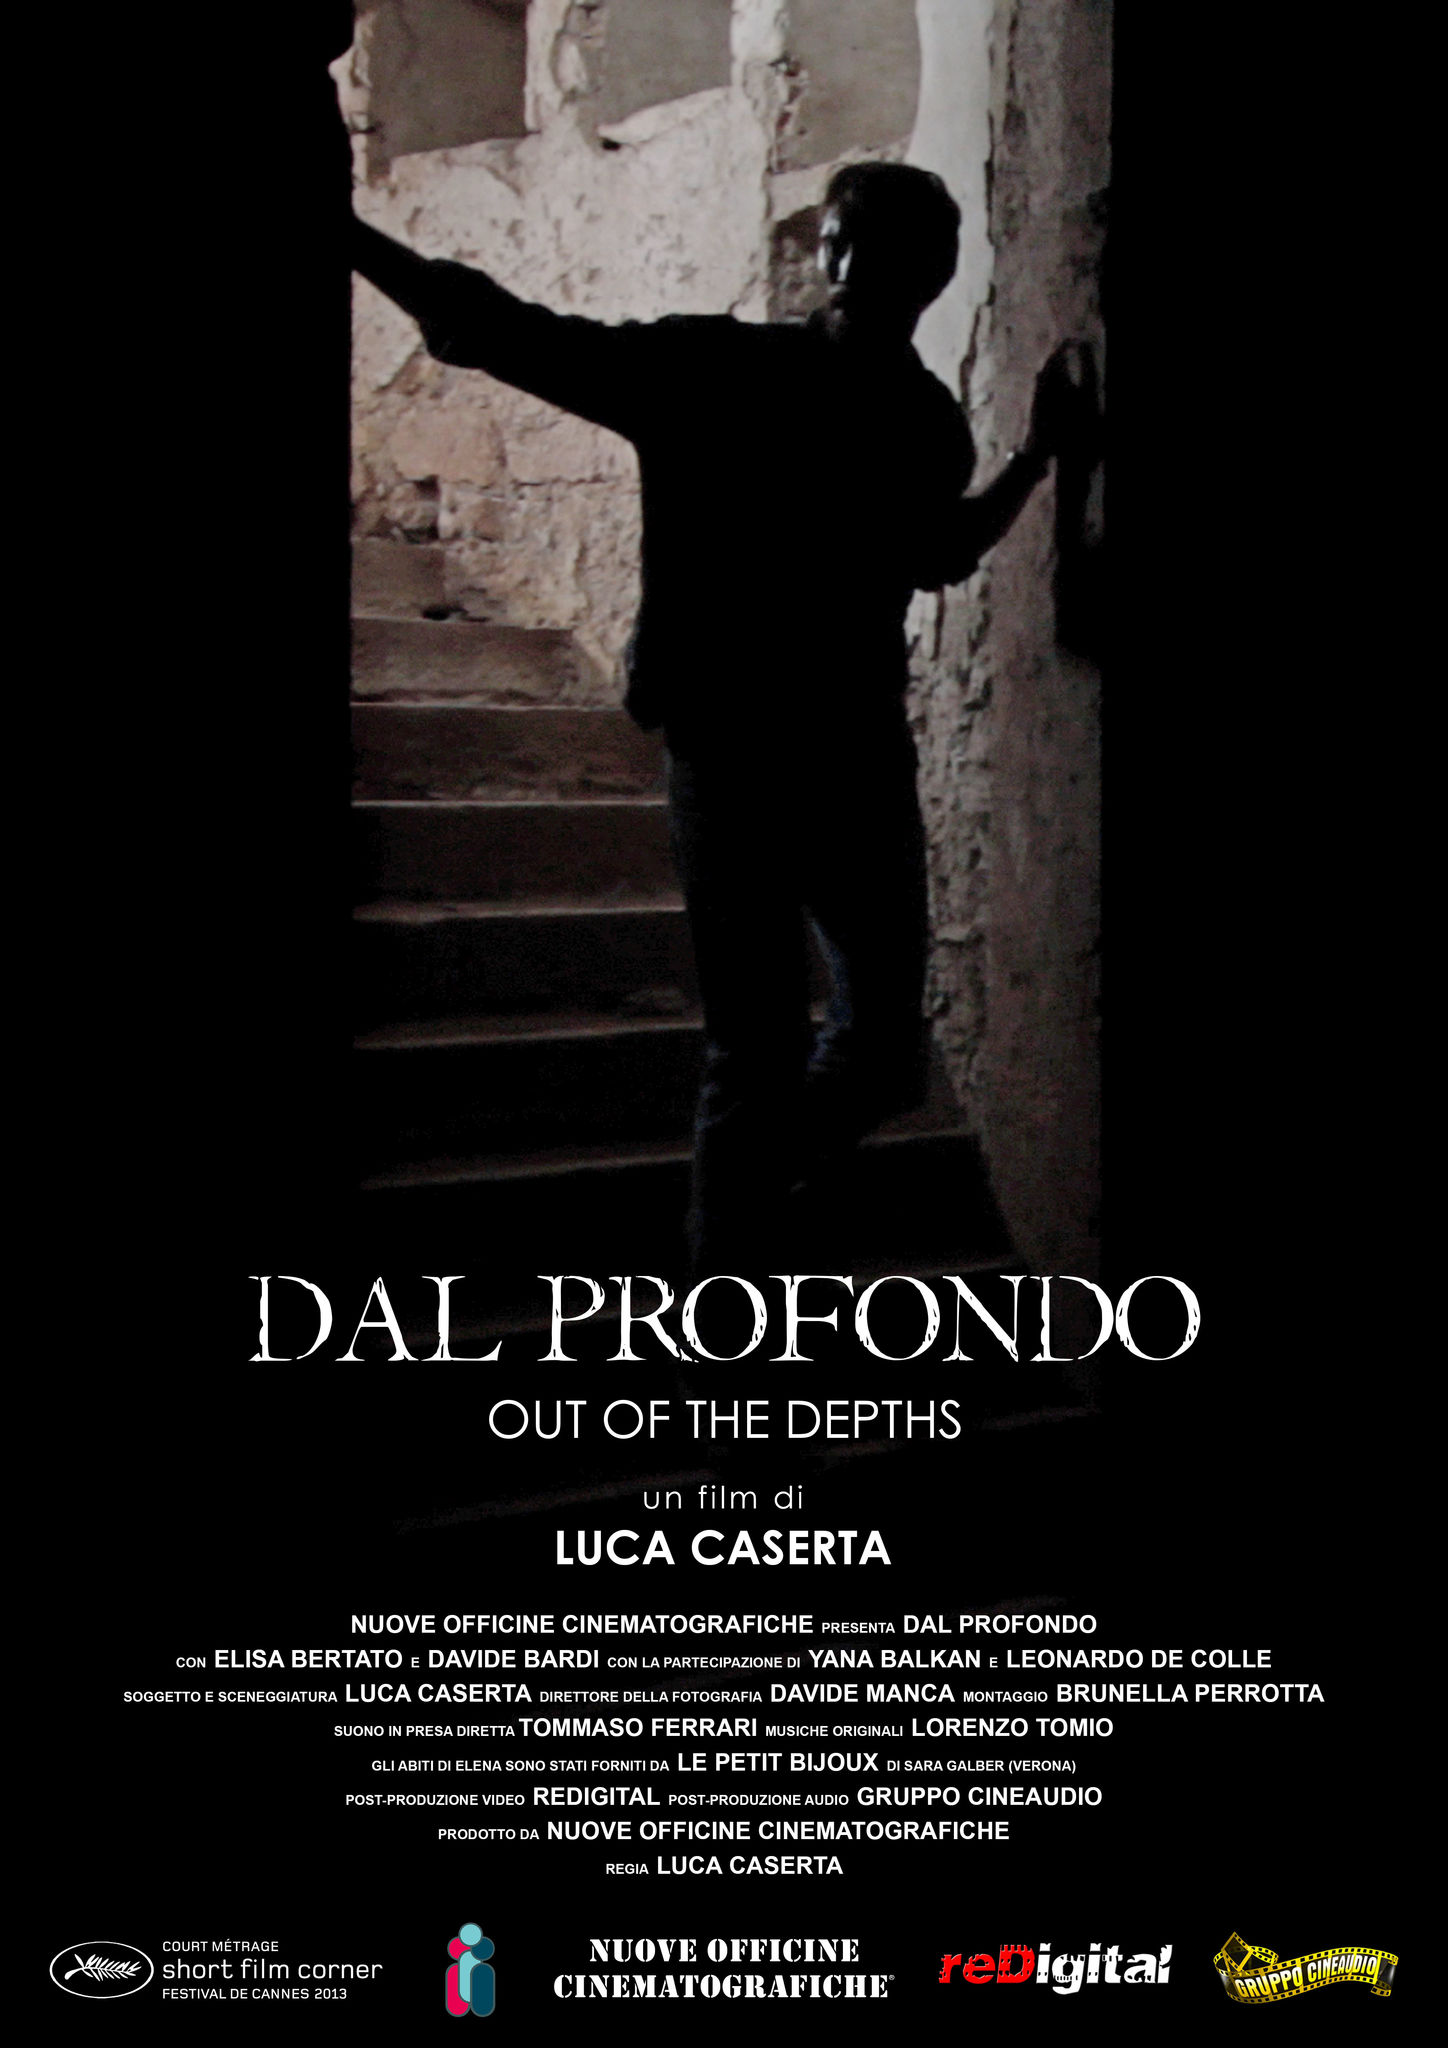 Dal profondo (Out of the Depths)